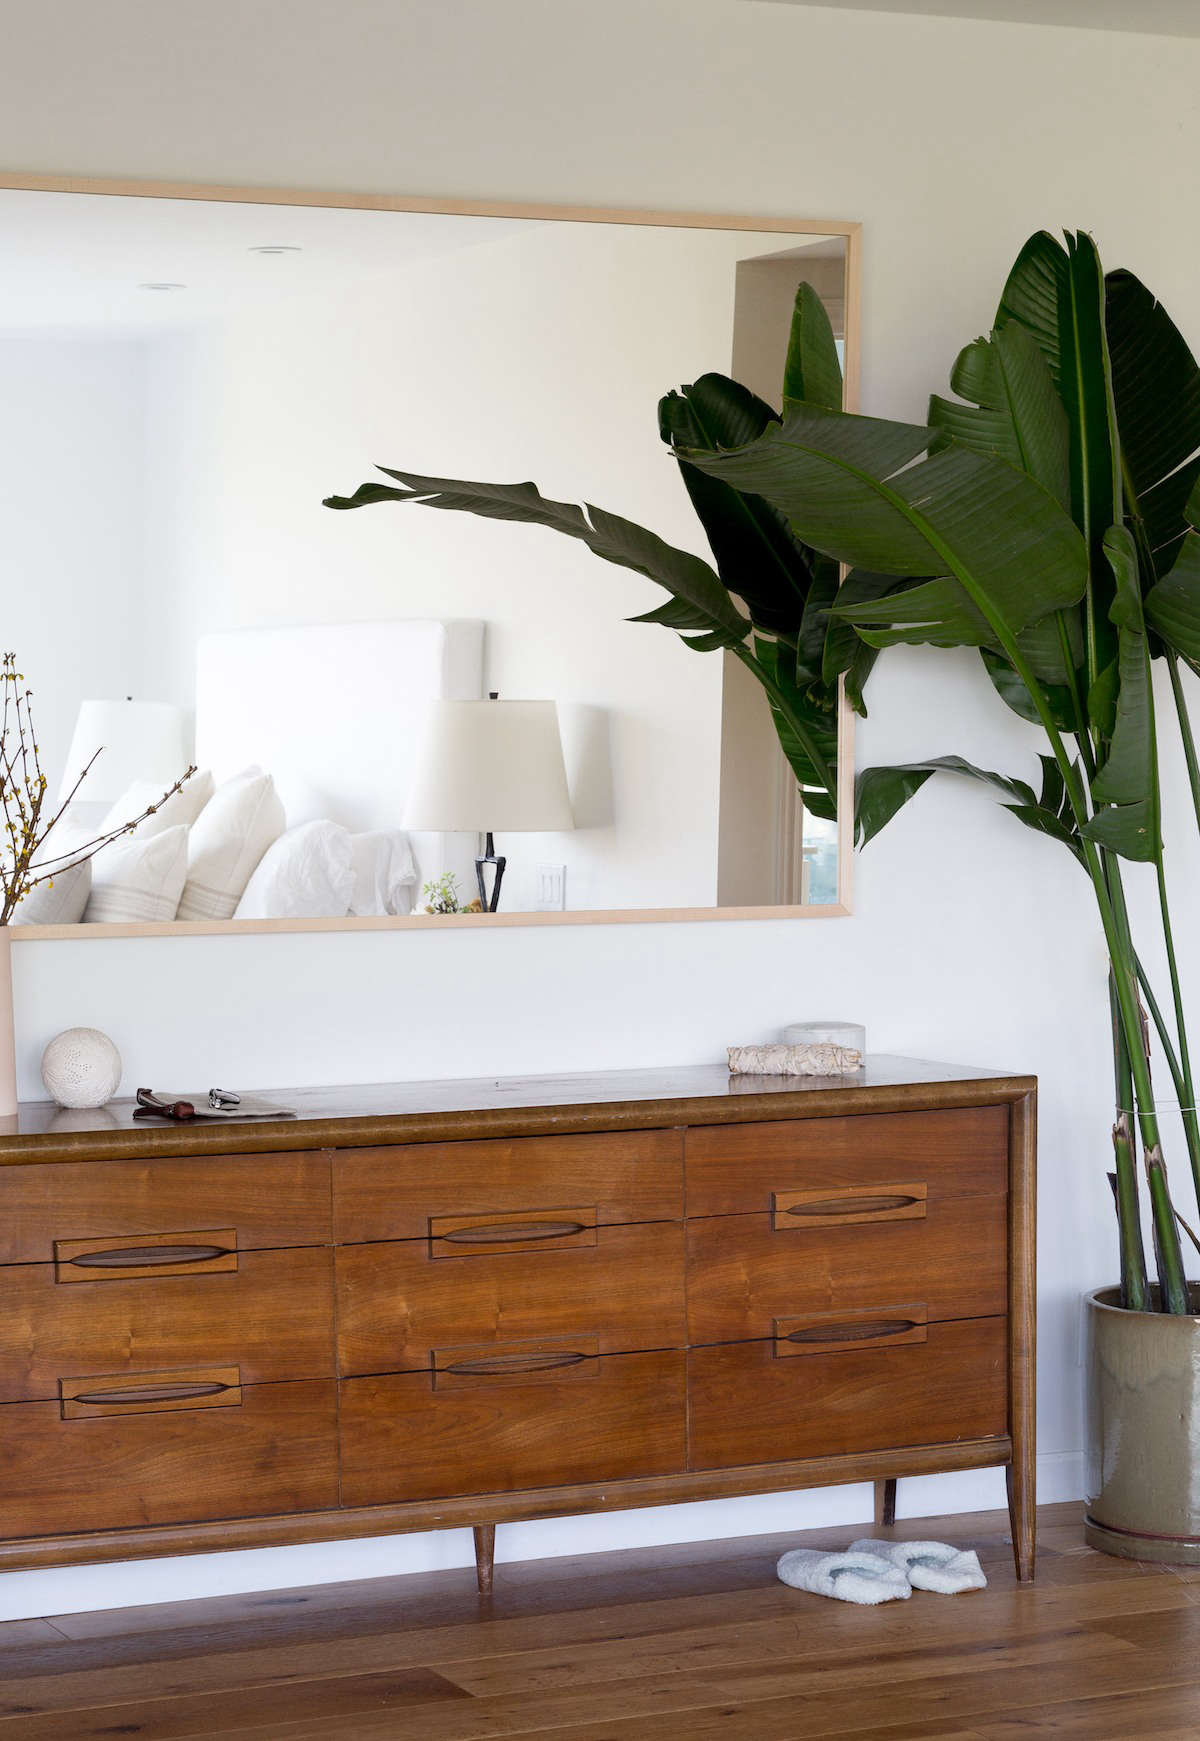 The vintage credenza, used as a dresser, is from Chairish.